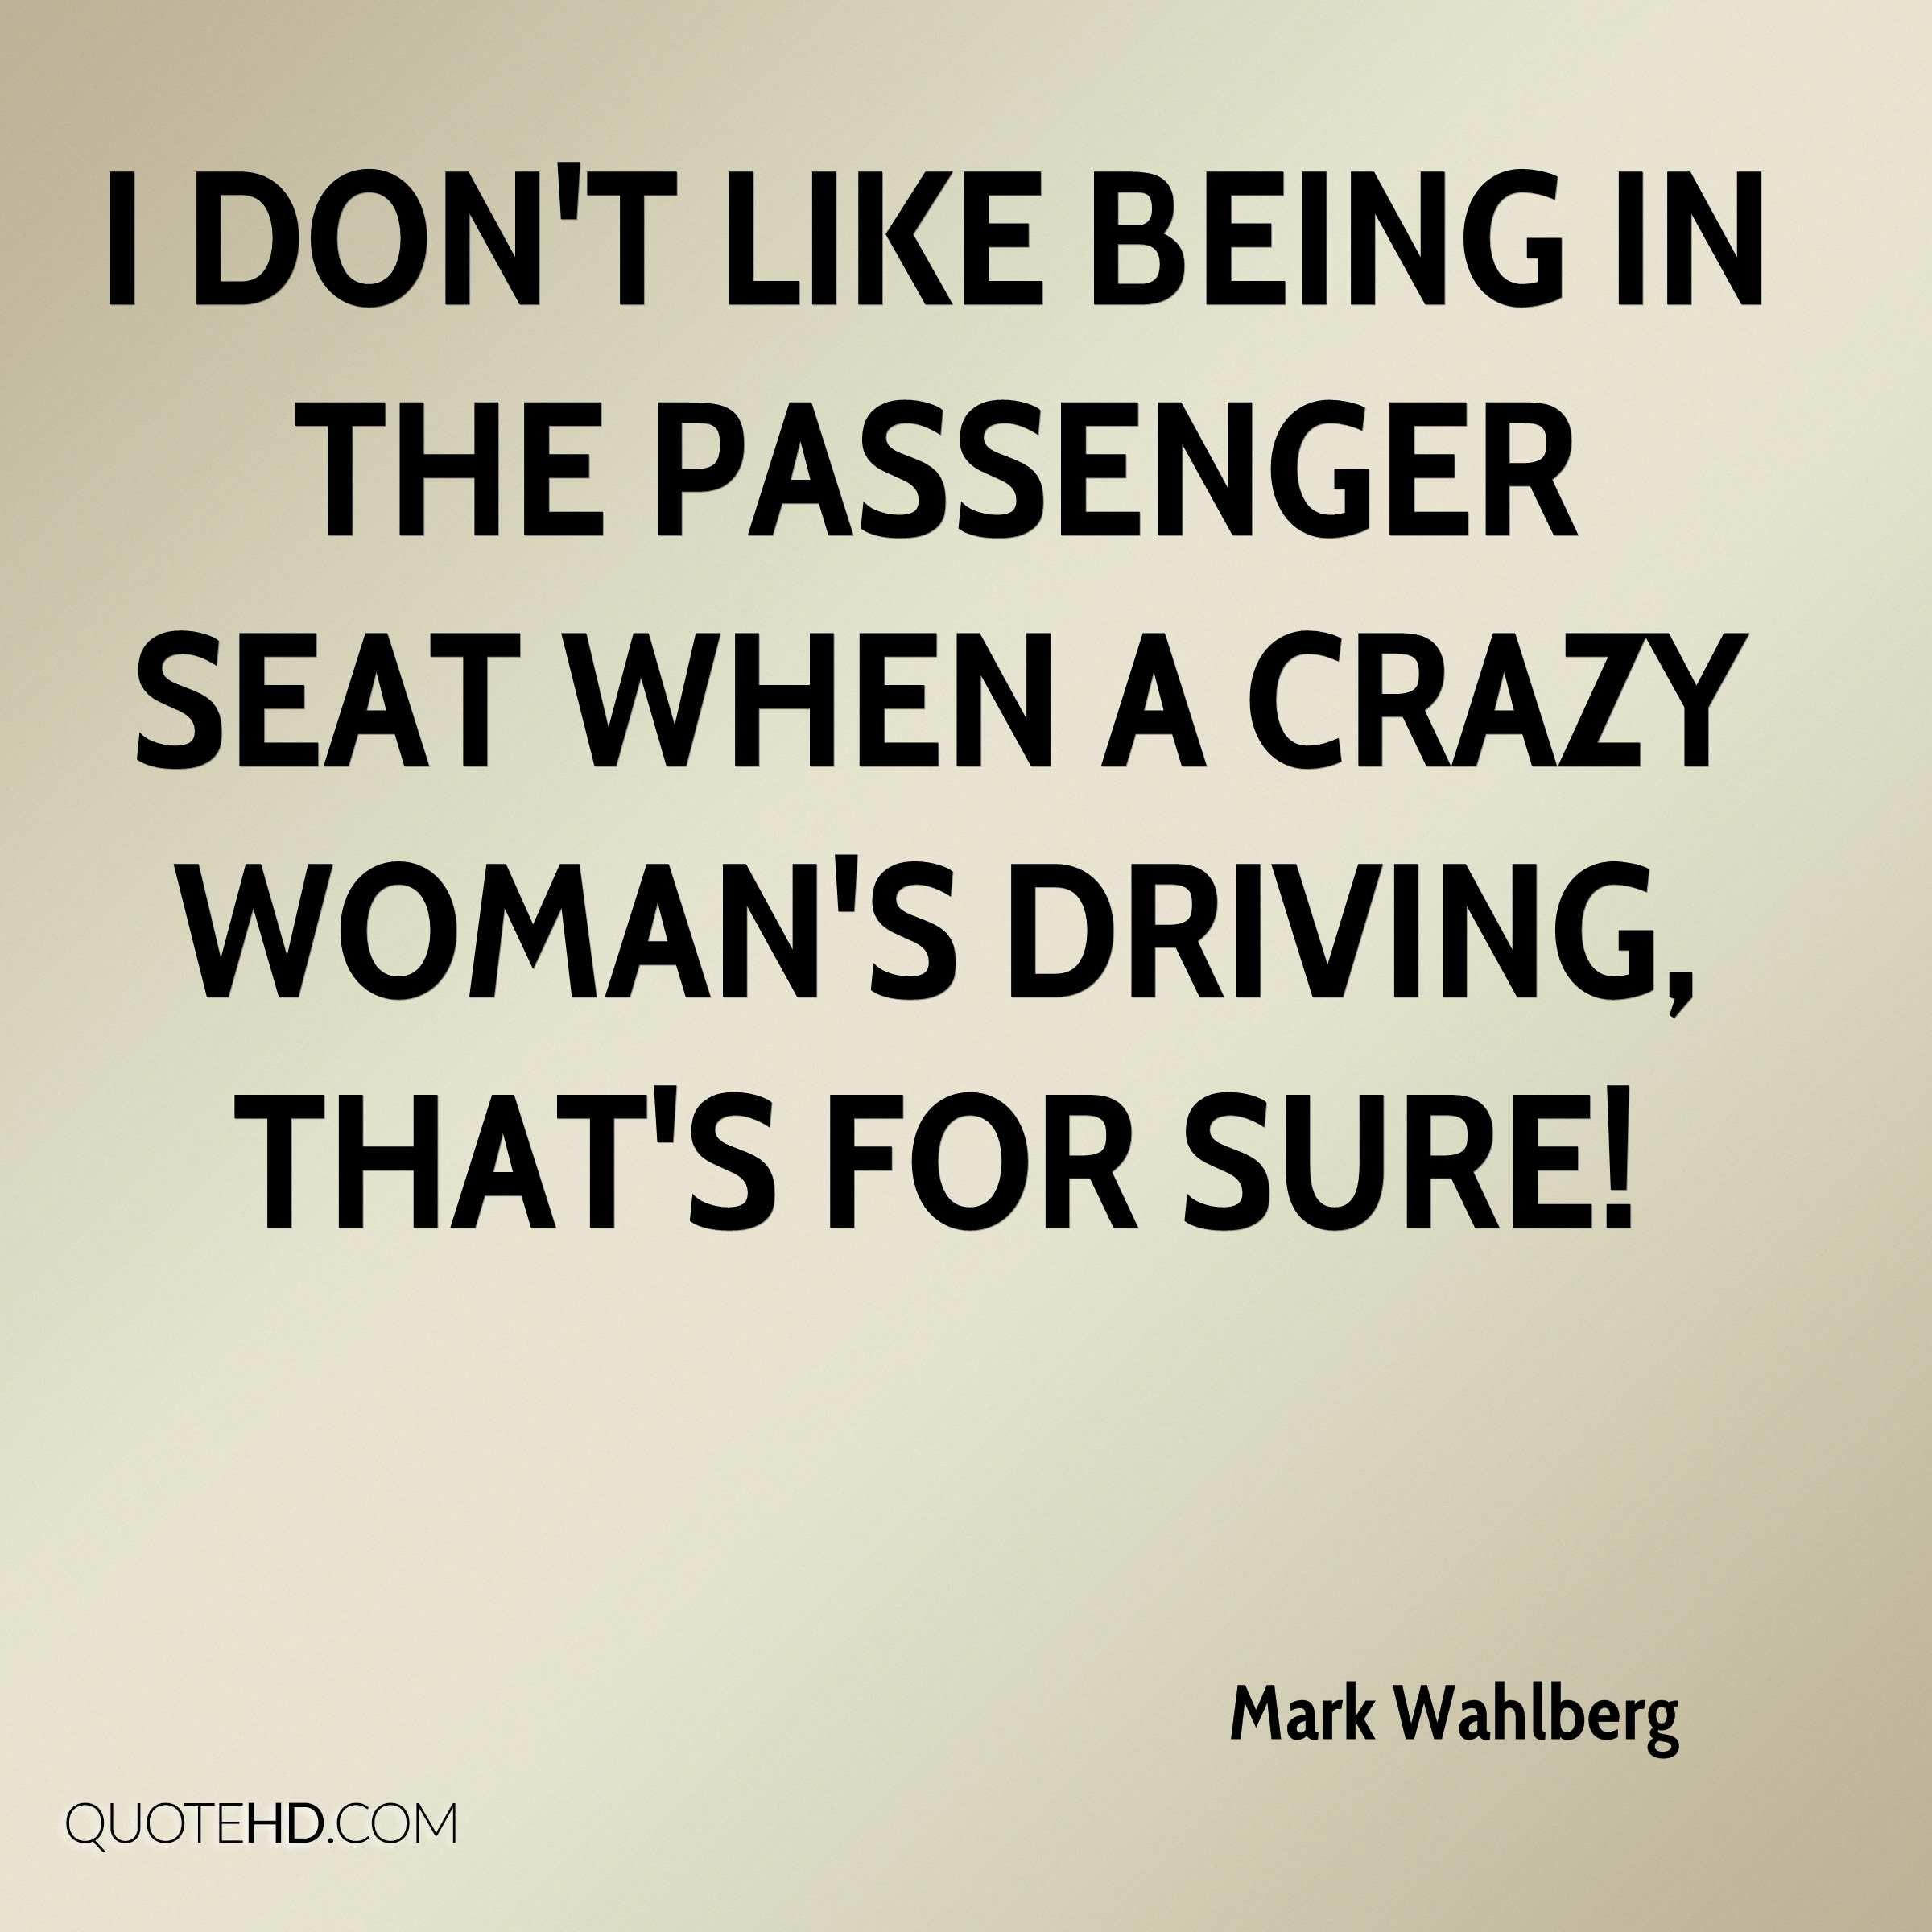 I don't like being in the passenger seat when a crazy woman's driving, that's for sure!